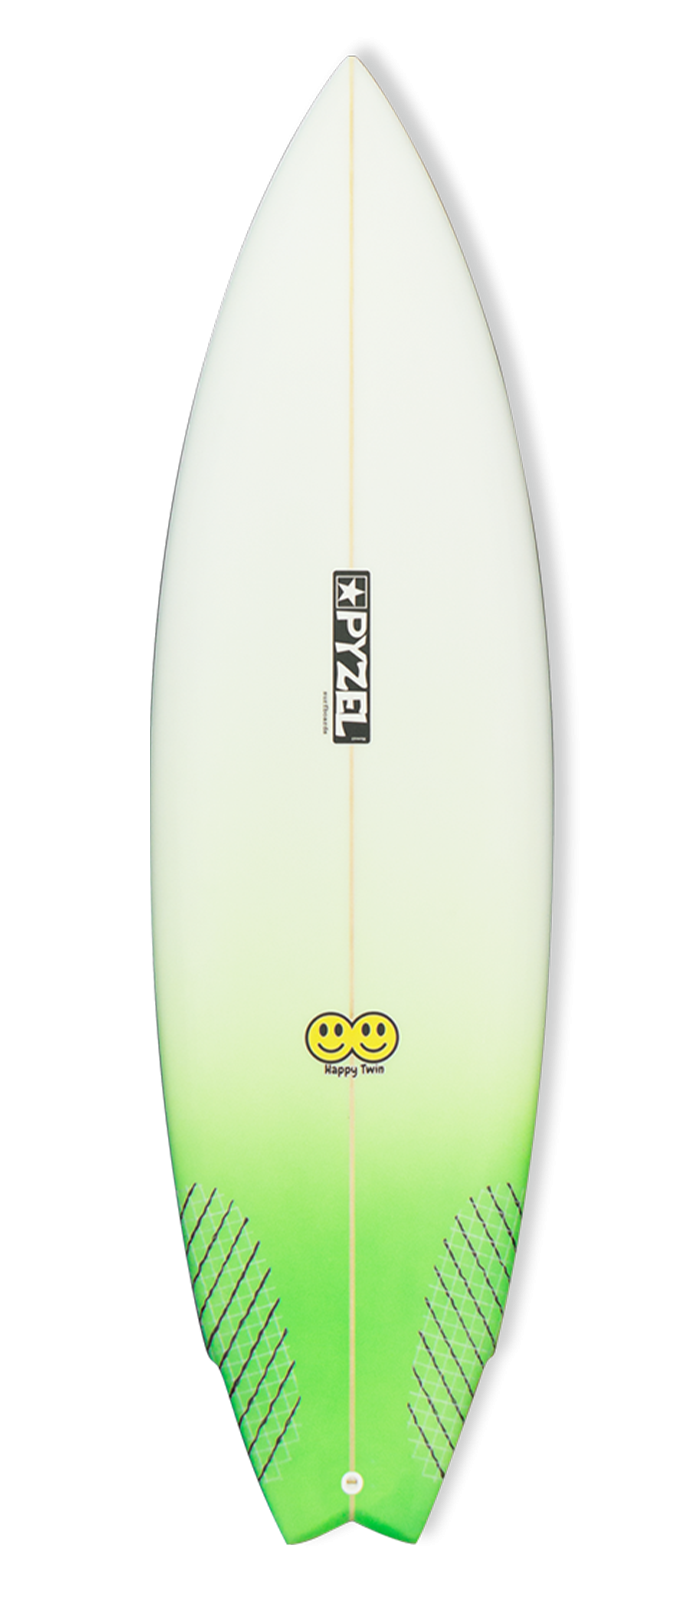 HAPPY TWIN surfboard model